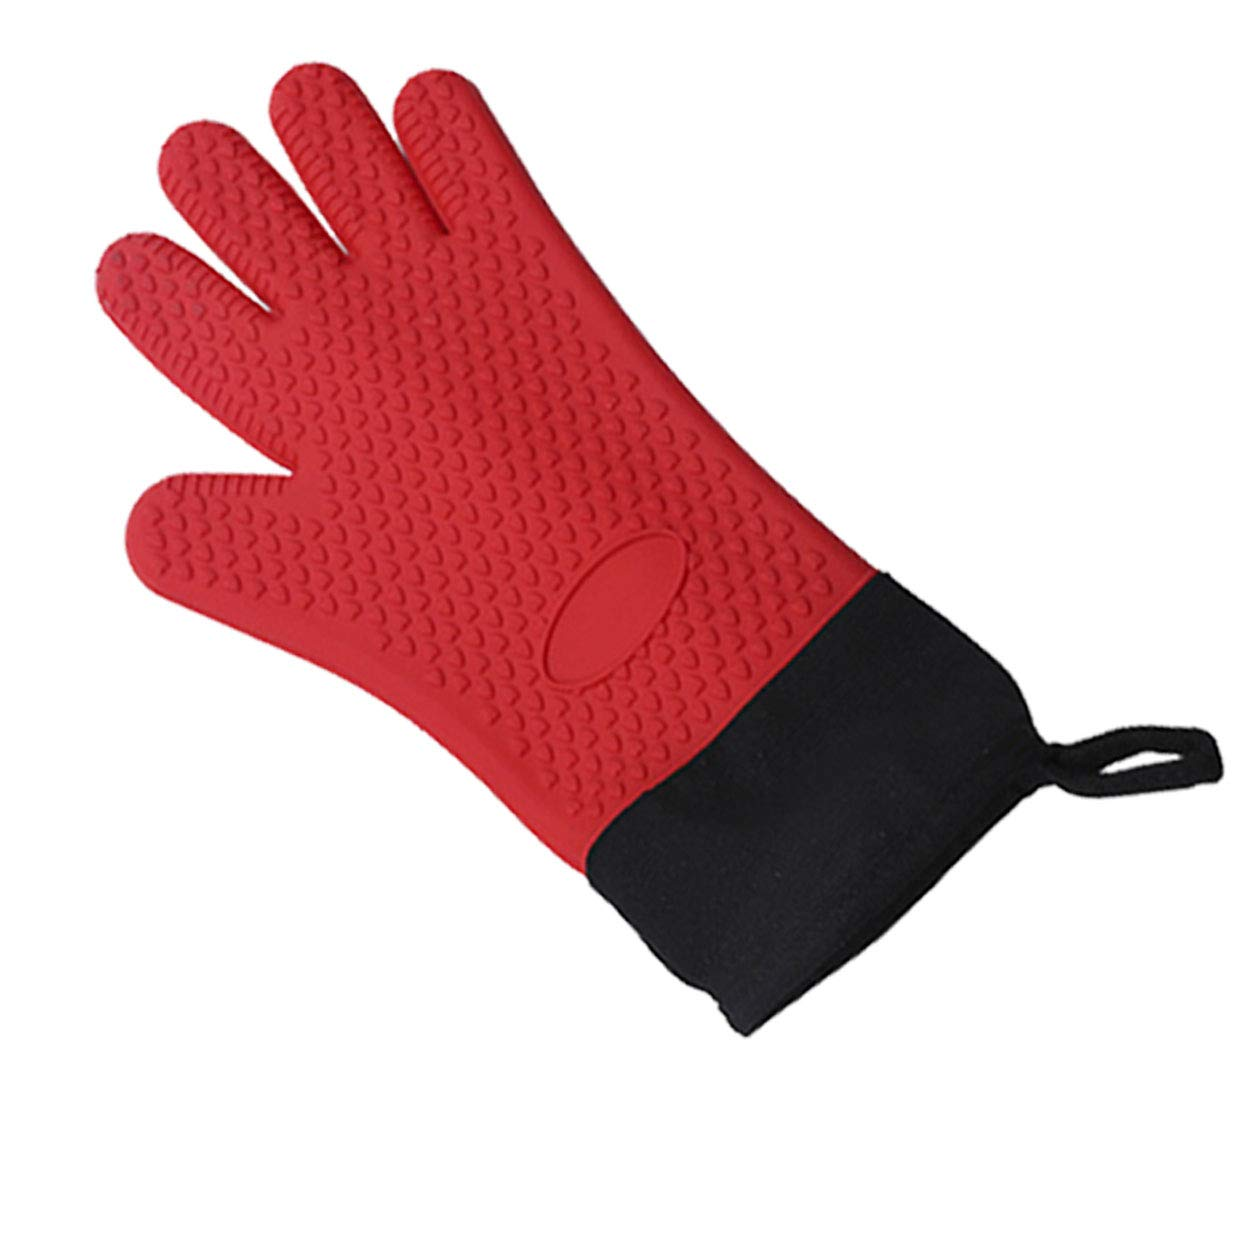 Wallesun Silicone Oven Mitt 1 PC,Heat Resistant Insulated Gloves with Hook and Inner Cotton Lining, Concave Heart Shape Design, Full Finger Waterproof for Cooking BBQ Baking Grilling(Red)